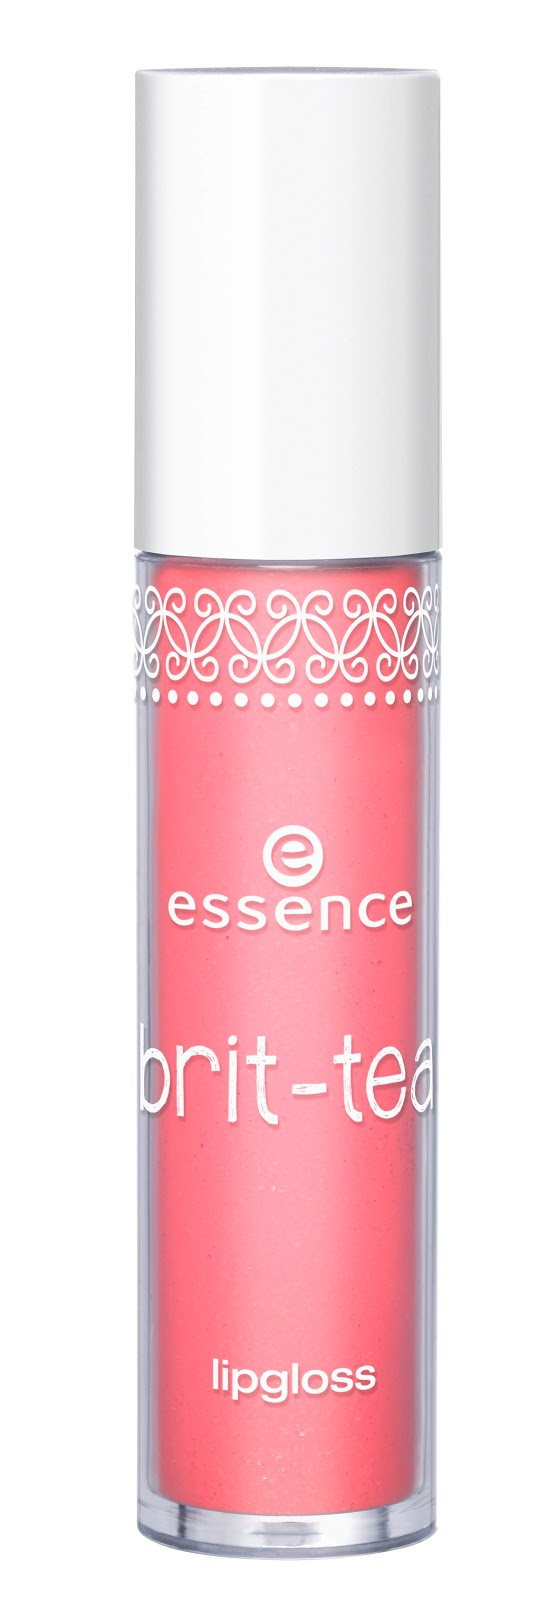 essence brit tea lipgloss